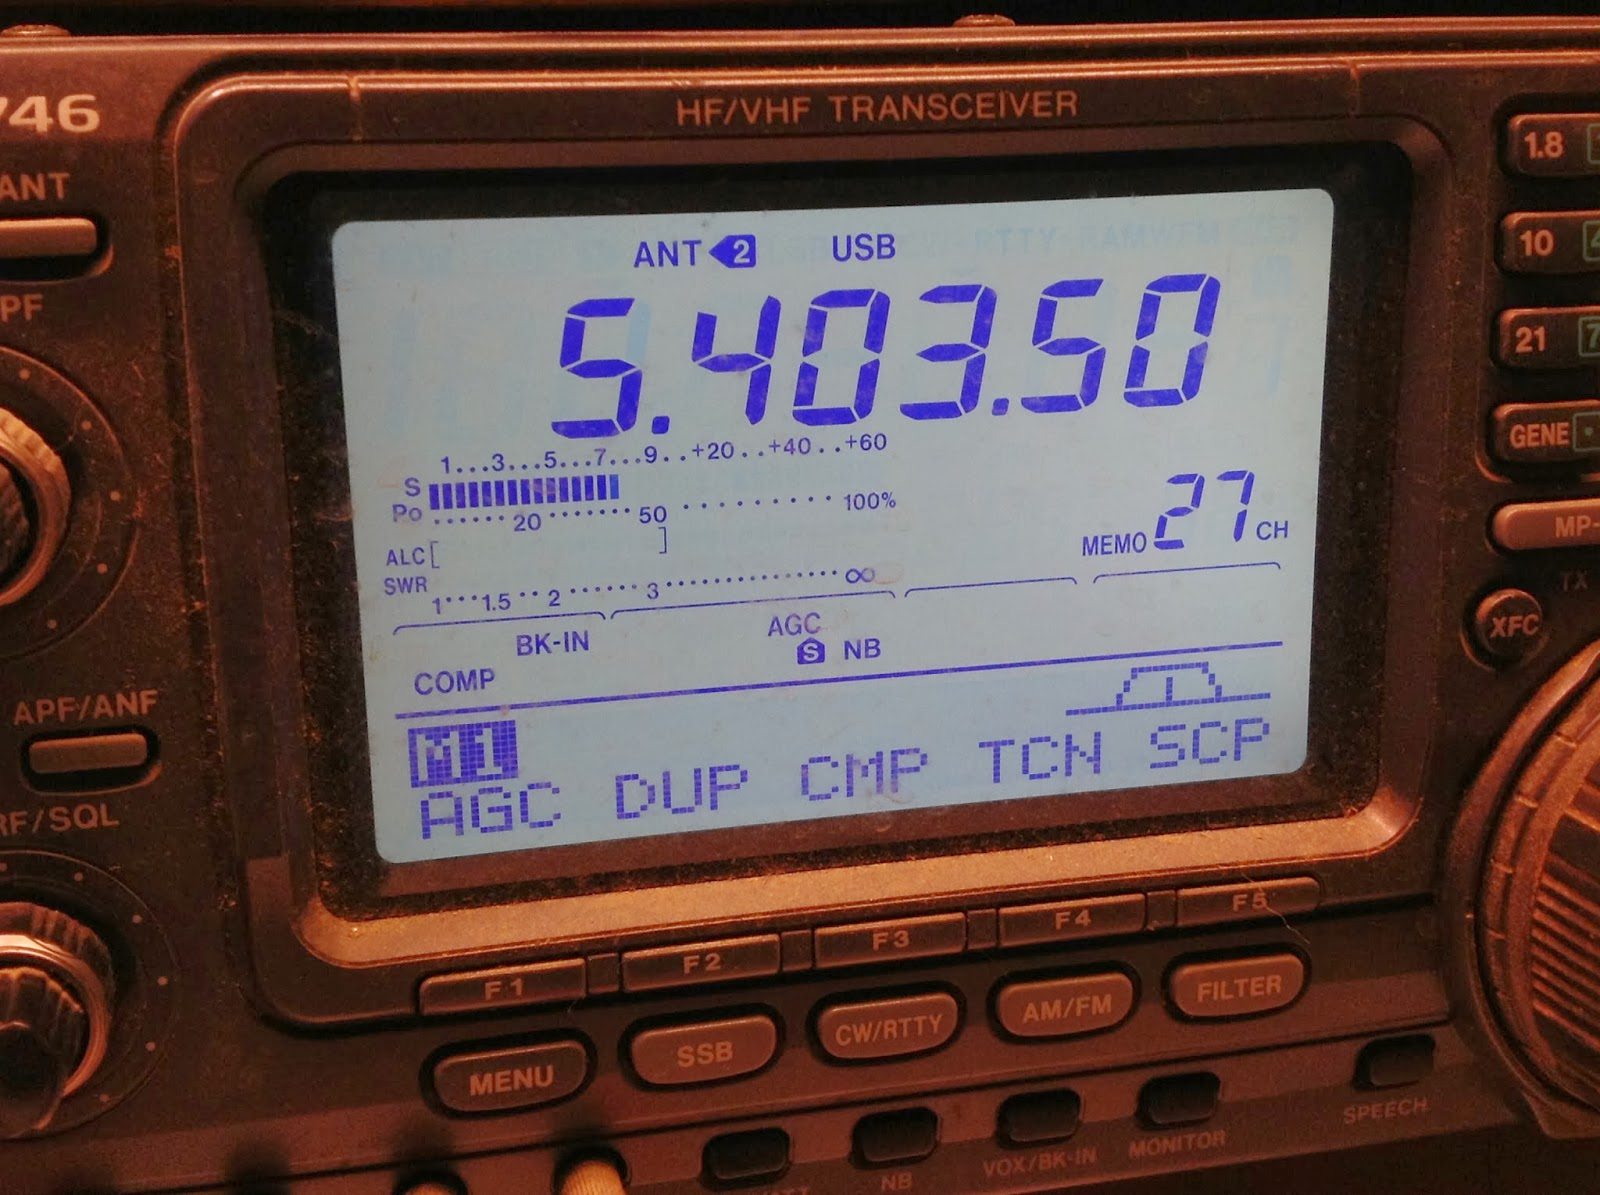 The Netherlands Opens 100 kHz Band at 5 MHz